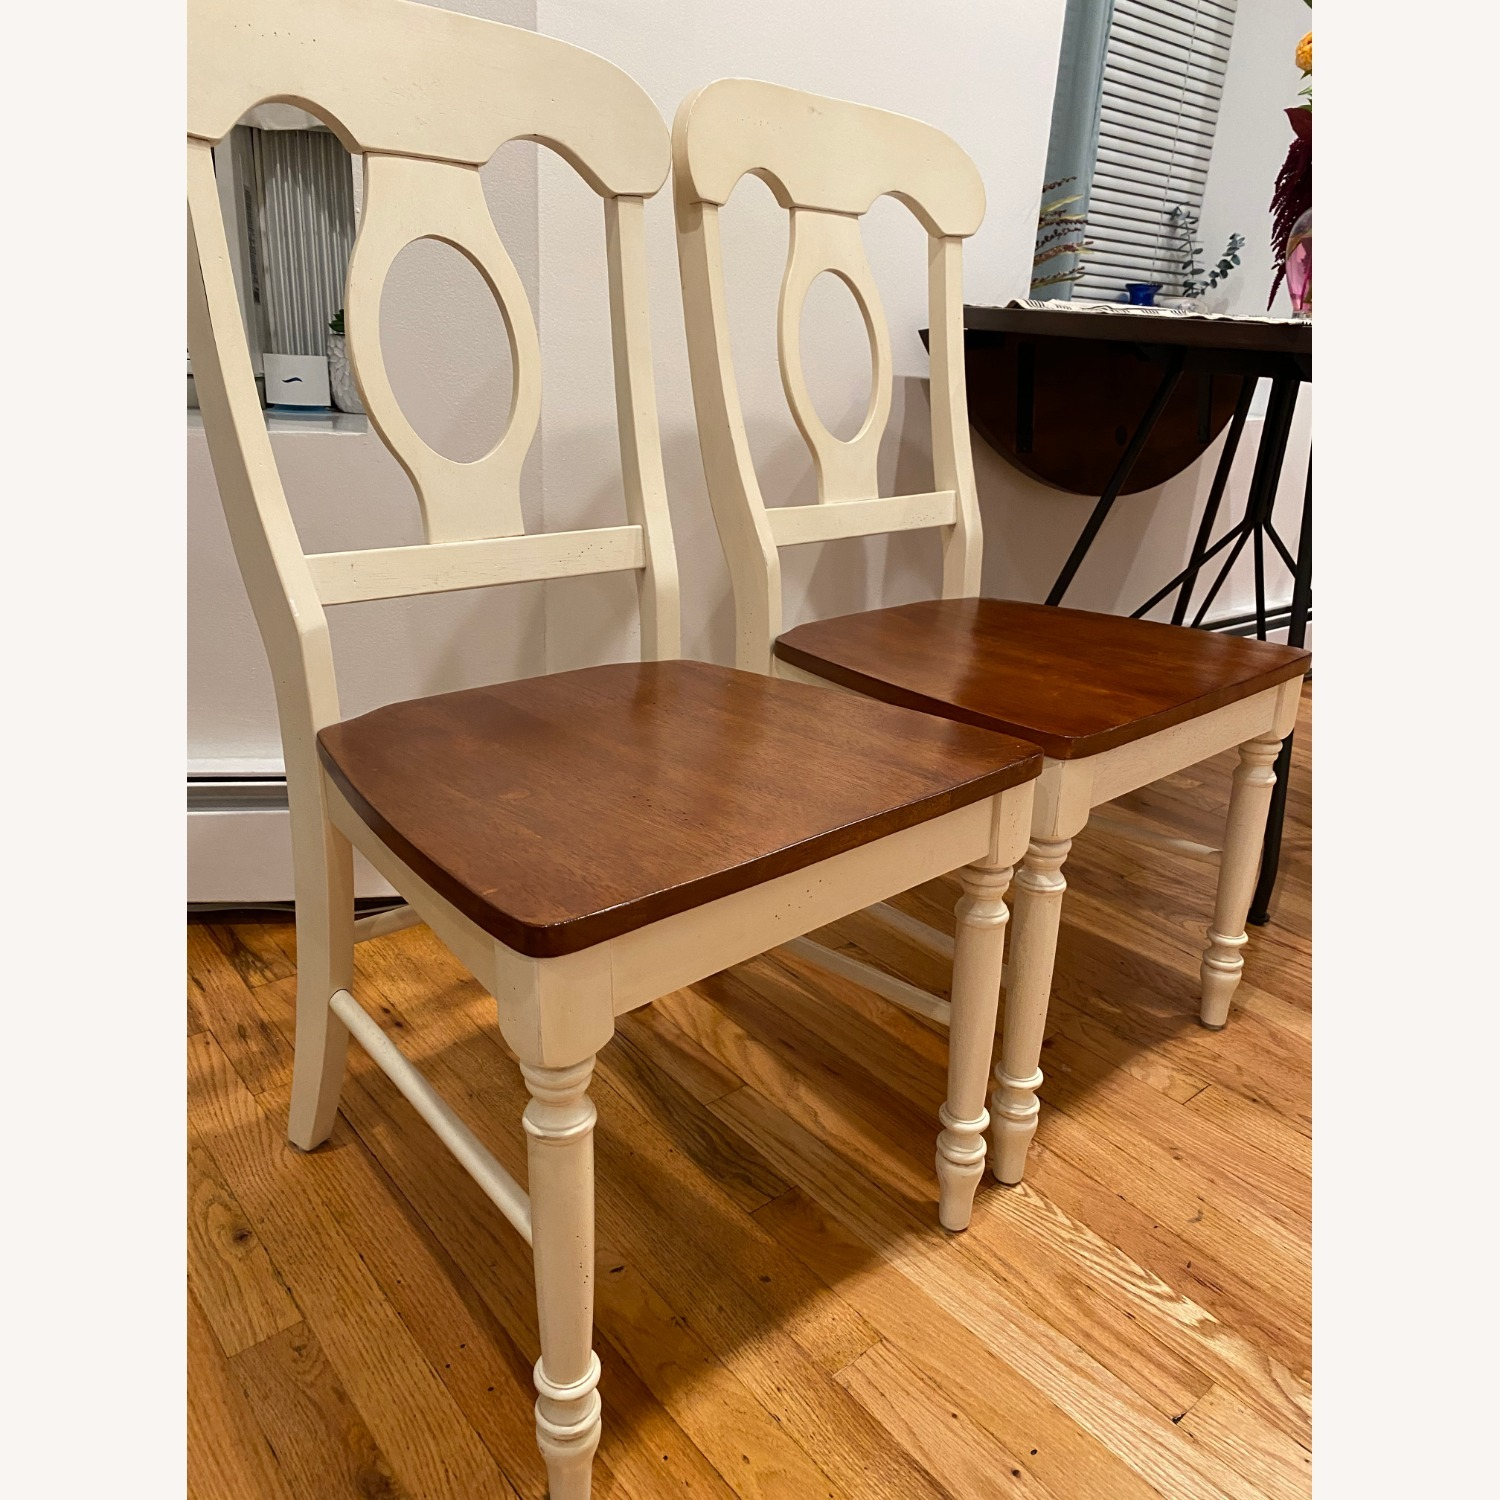 Pair of Dining Chairs - image-2